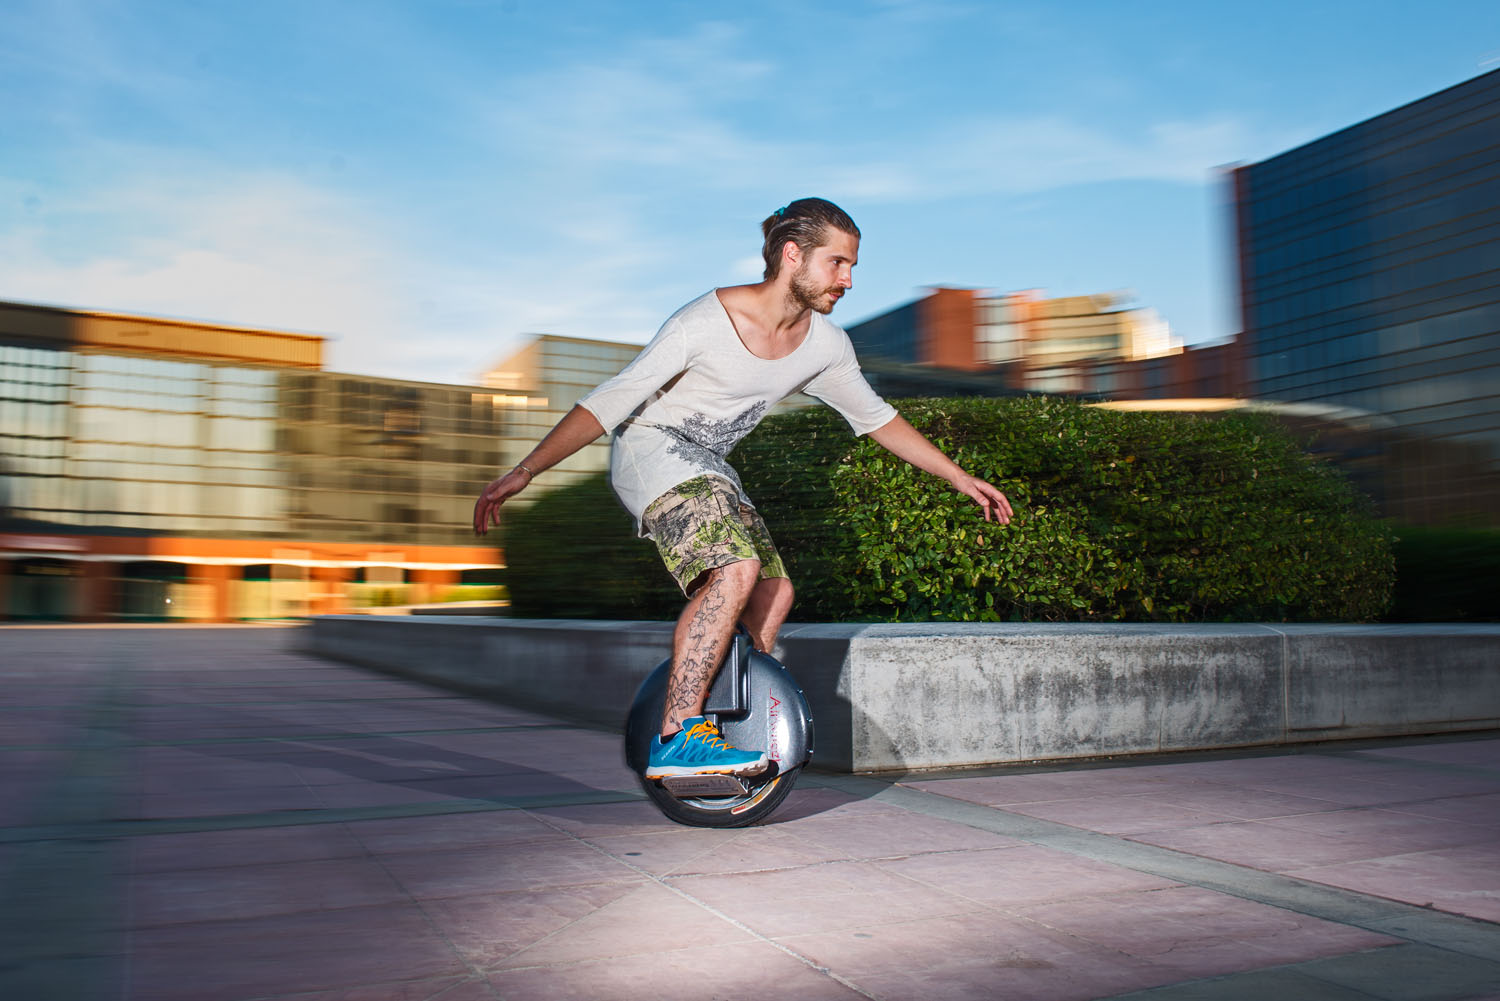 Airwheel_20151024172819576.jpg